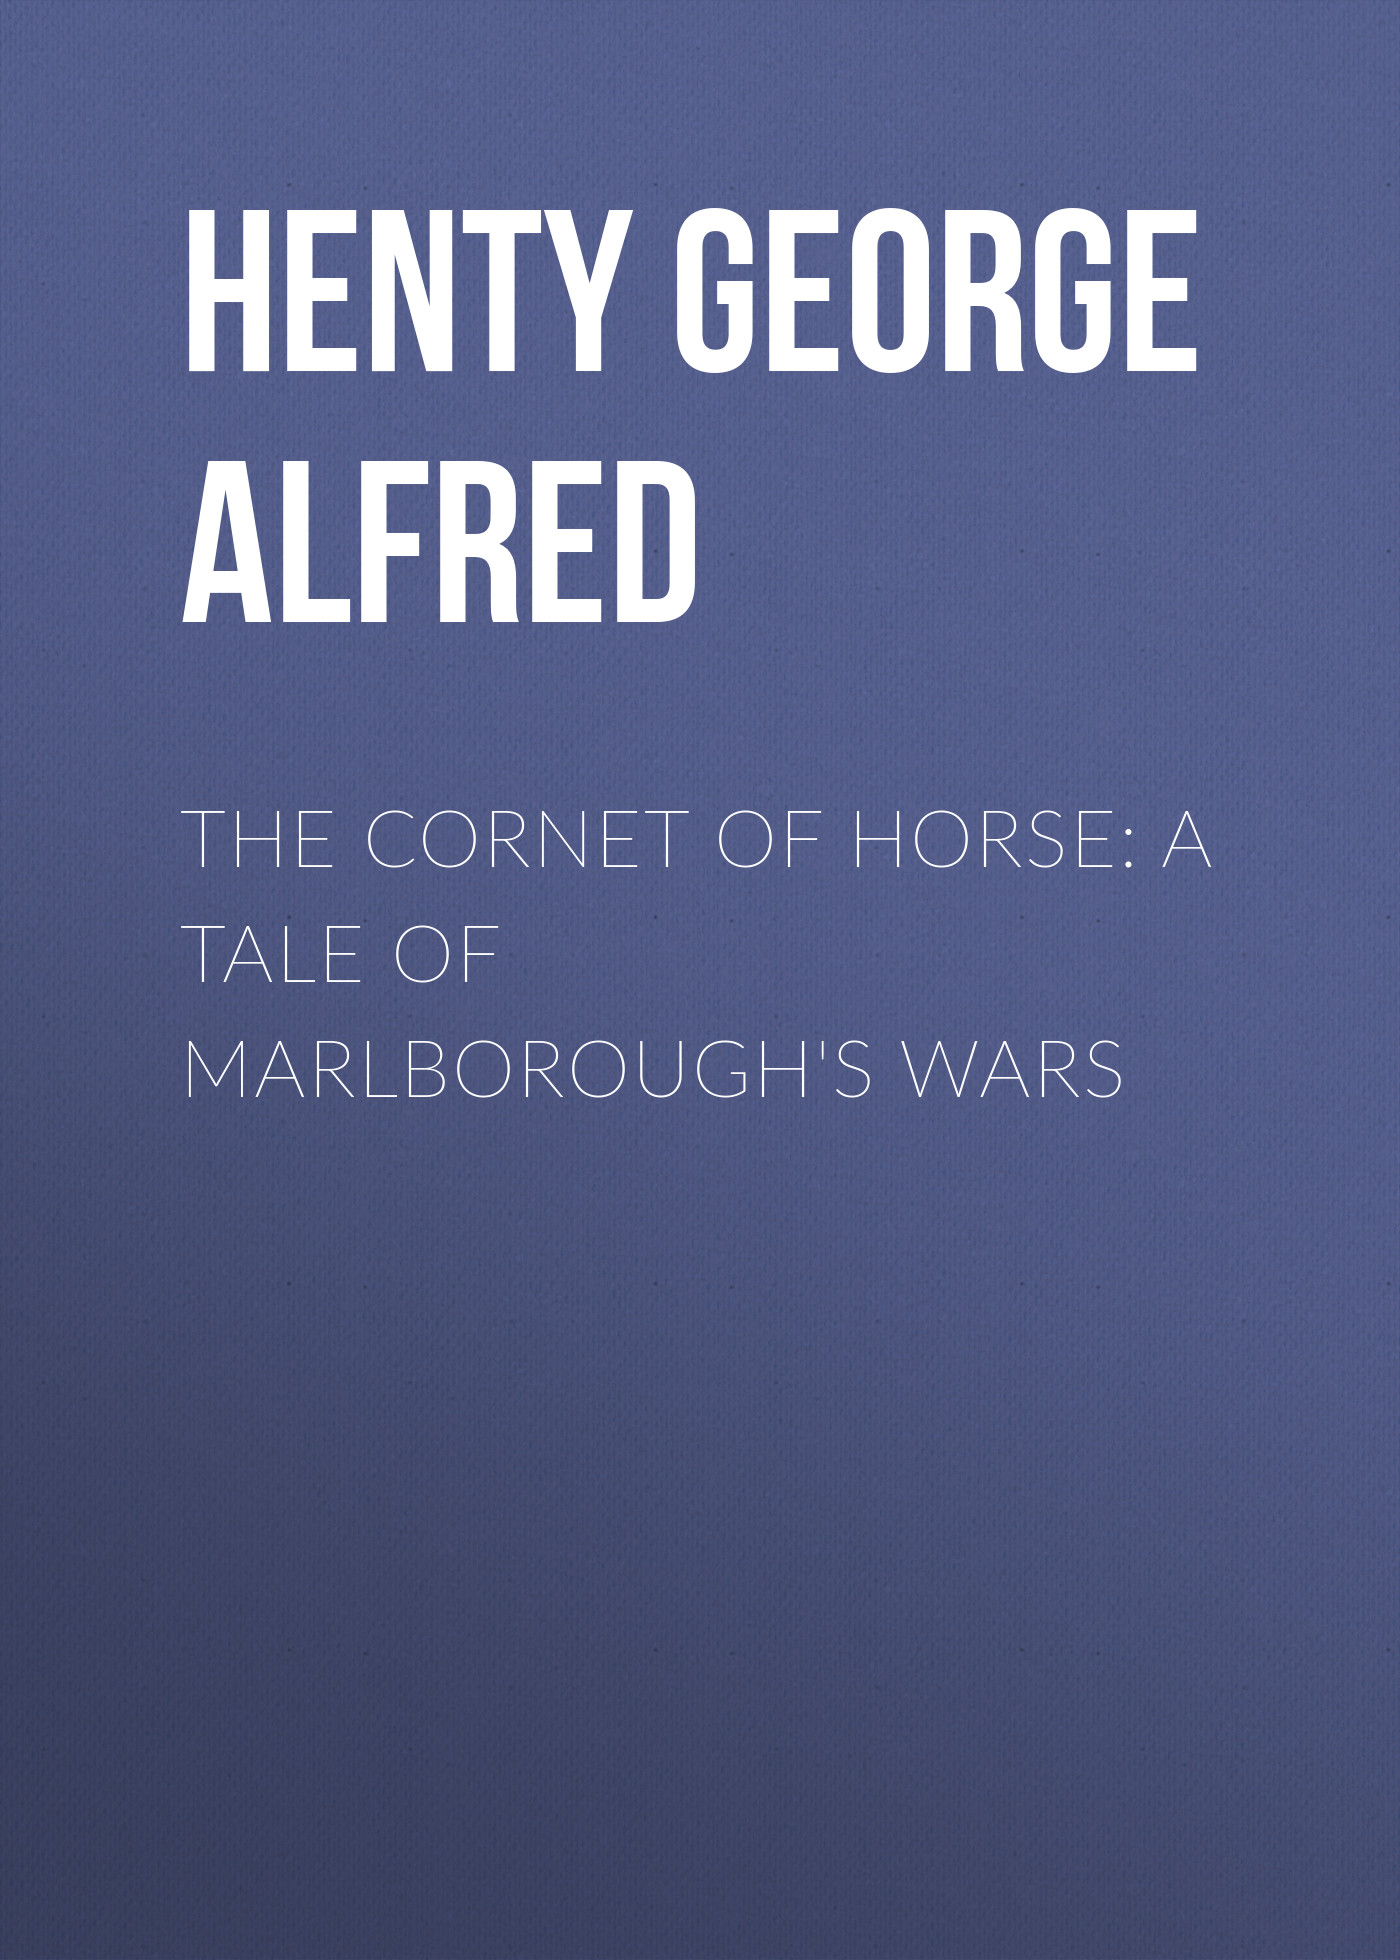 Henty George Alfred The Cornet of Horse: A Tale of Marlborough's Wars bb cornet heavy model with case bore size 11 73mm bell dia 123mm